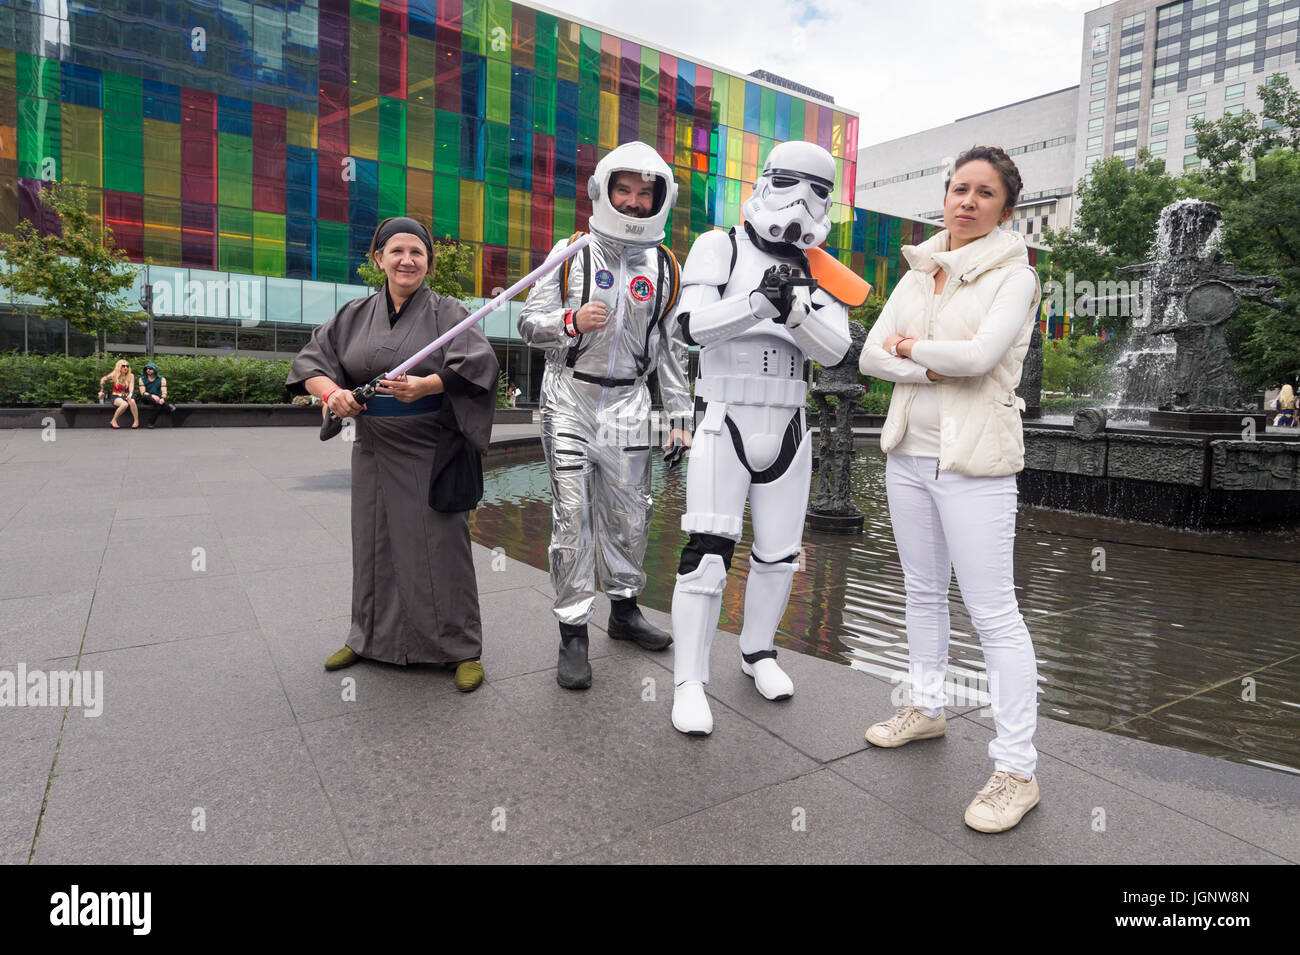 Montreal, Canada. 8th July, 2017. Pop-culture fan convention Comic Con Credit: Marc Bruxelle/Alamy Live News - Stock Image